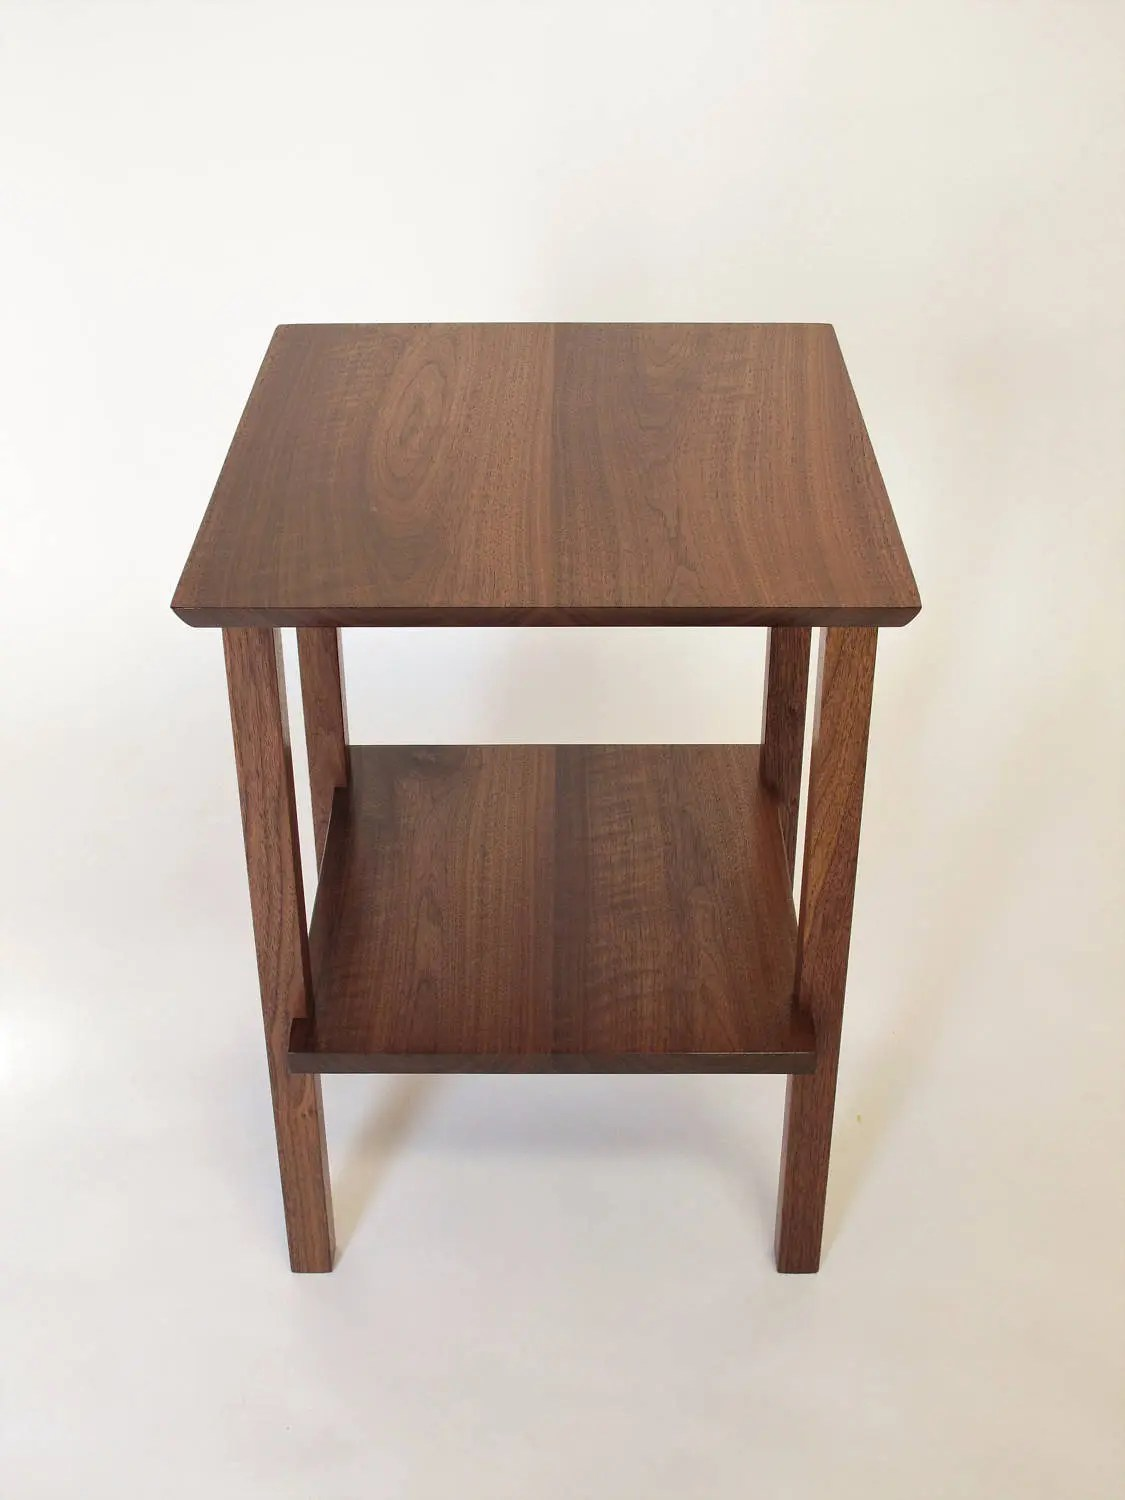 End Table For Living Room End Table With Shelf Small Solid Wood Table For Living Room Or Bed Side Table Square Shape Mid Century Modern Furniture Styling